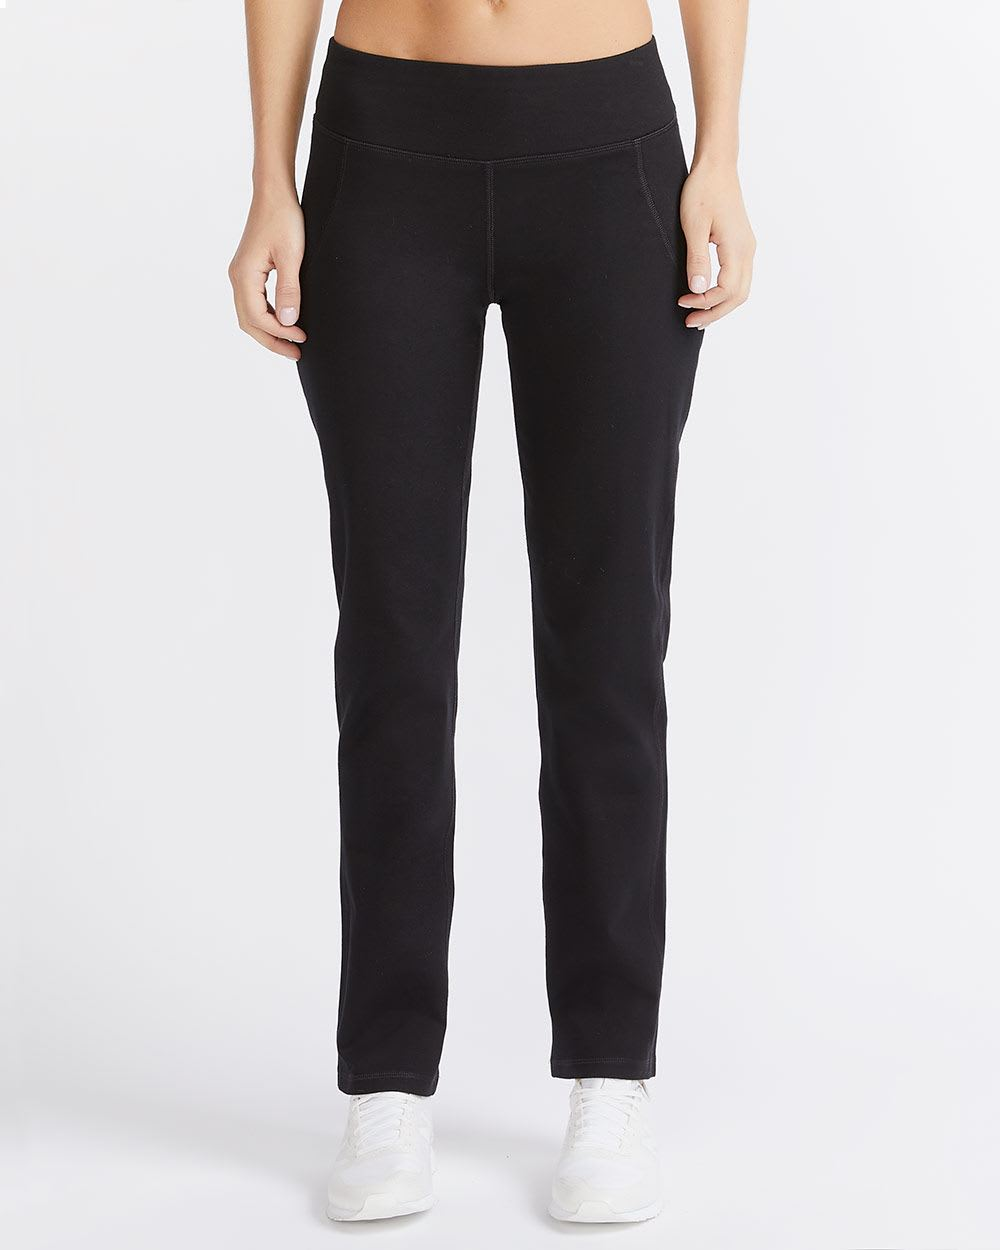 Hyba Ultra Petite Straight Sculptor Pants